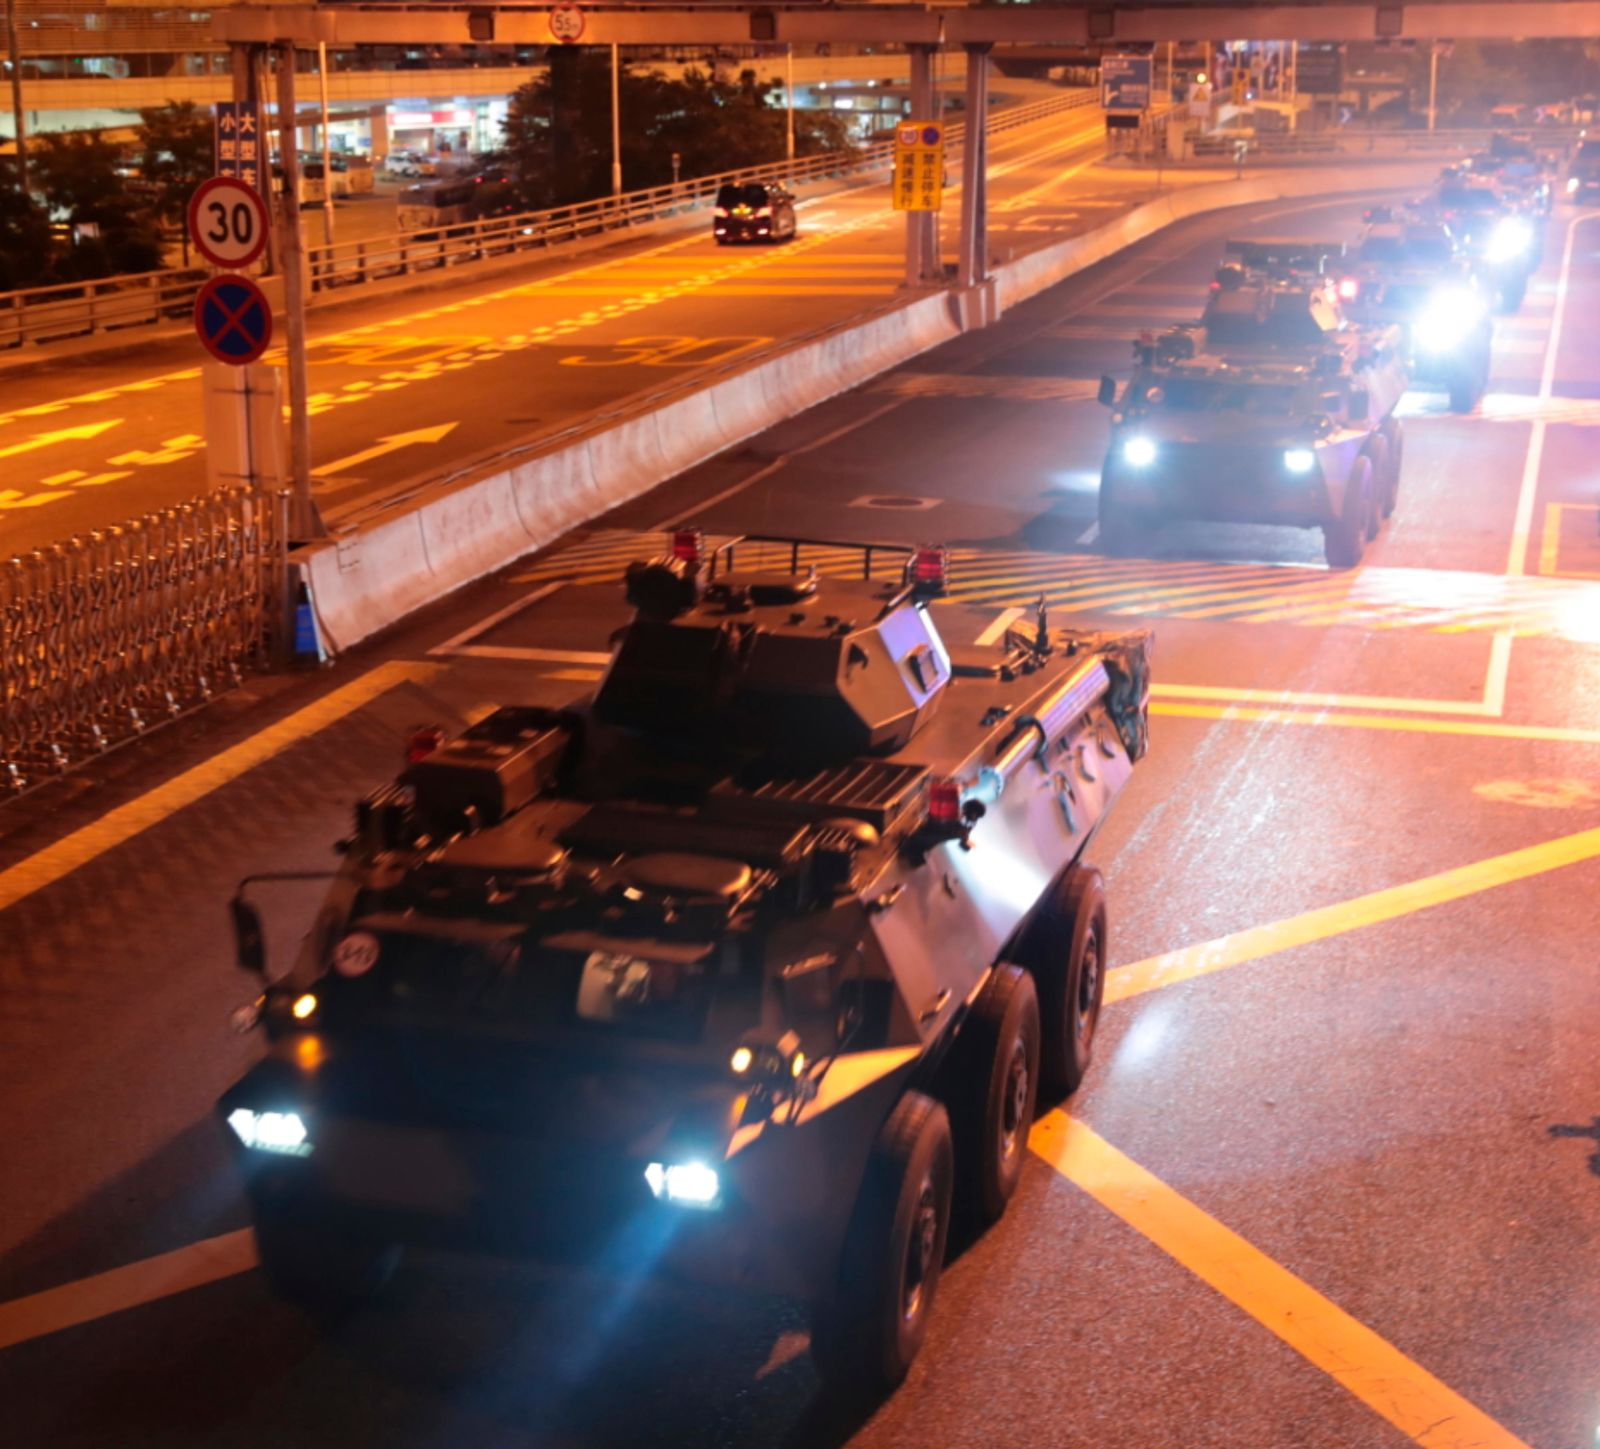 In this photo released by China's Xinhua News Agency, armored personnel carriers of China's People's Liberation Army (PLA) pass through the Huanggang Port border between China and Hong Kong, Thursday, Aug. 29, 2019. (Yuan Junmin/Xinhua via AP)